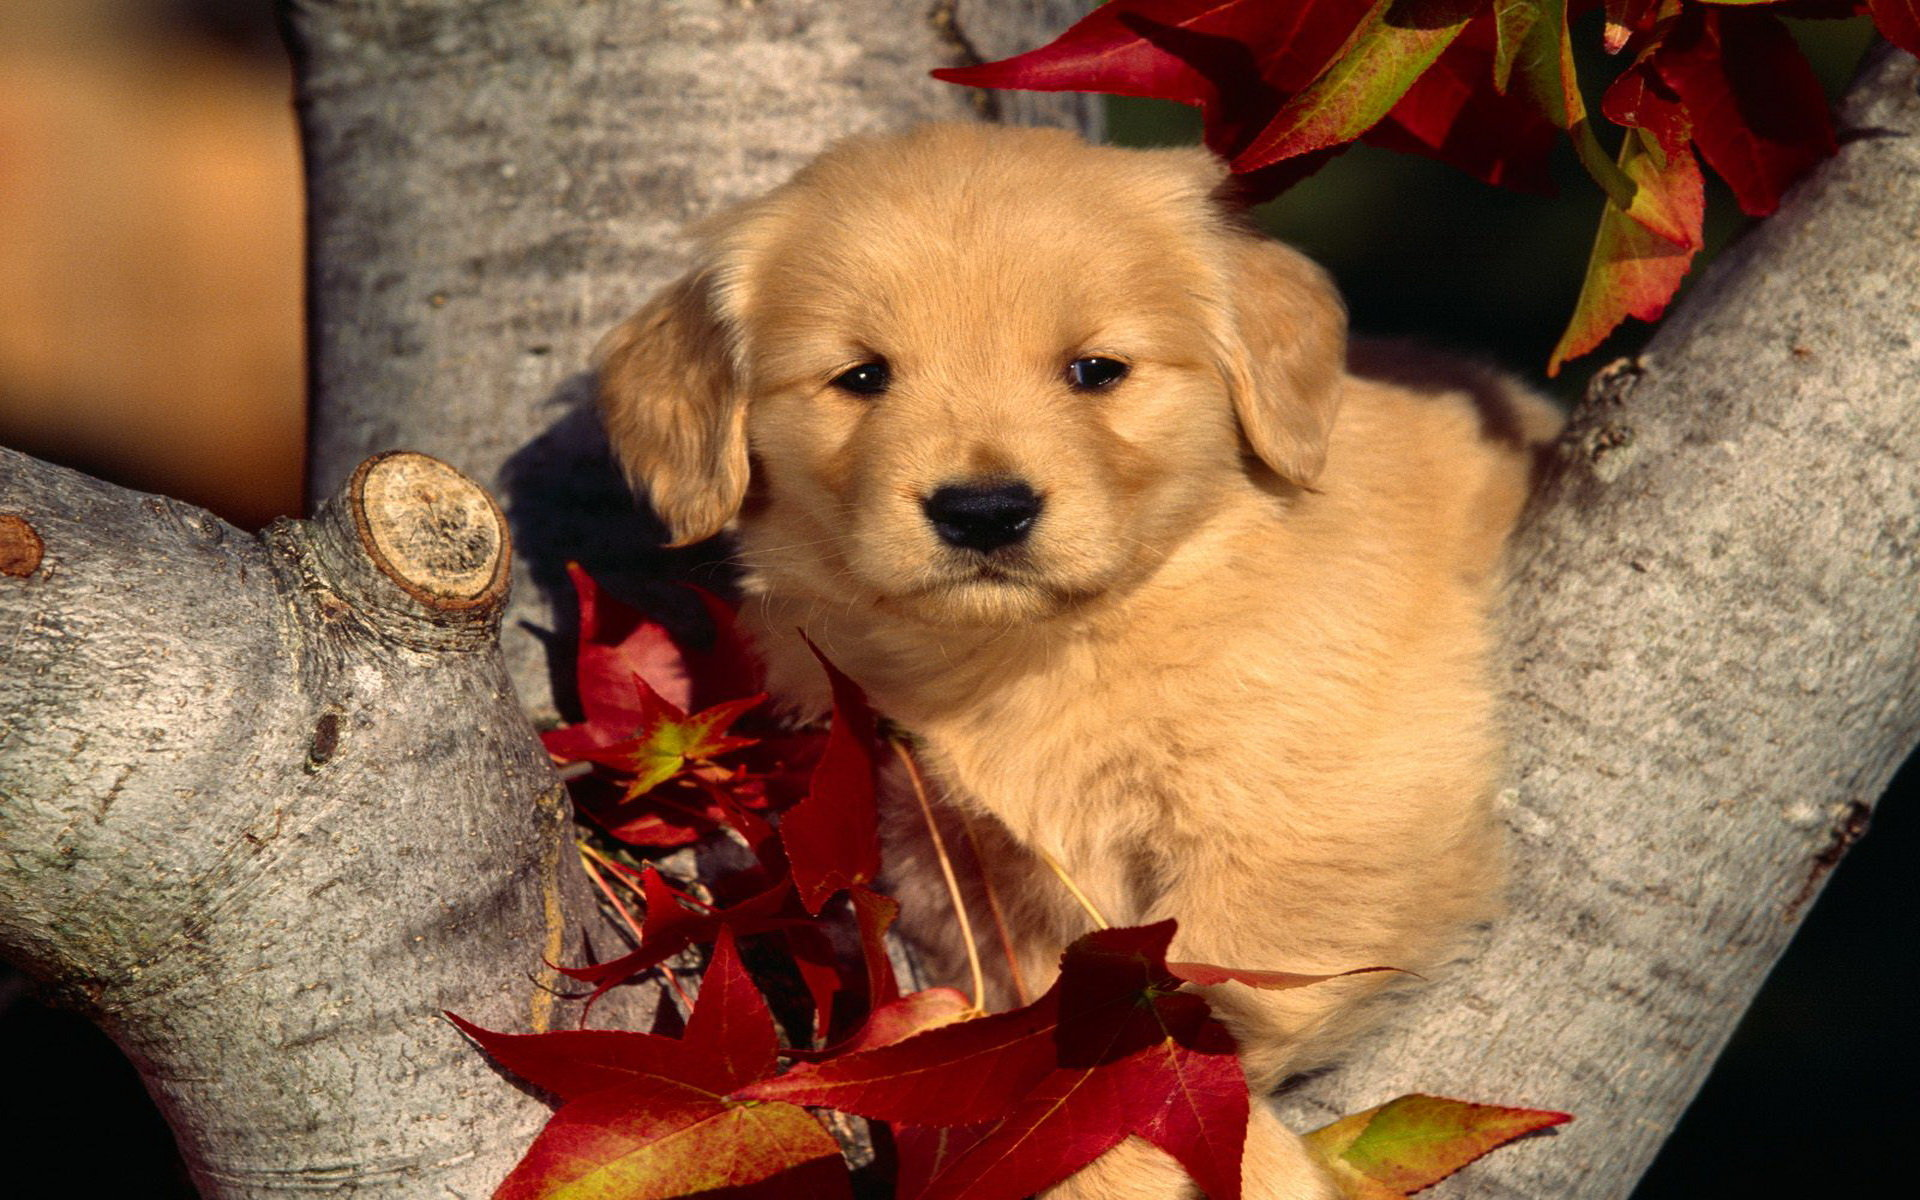 Download hd 1920x1200 Puppy PC background ID:47004 for free